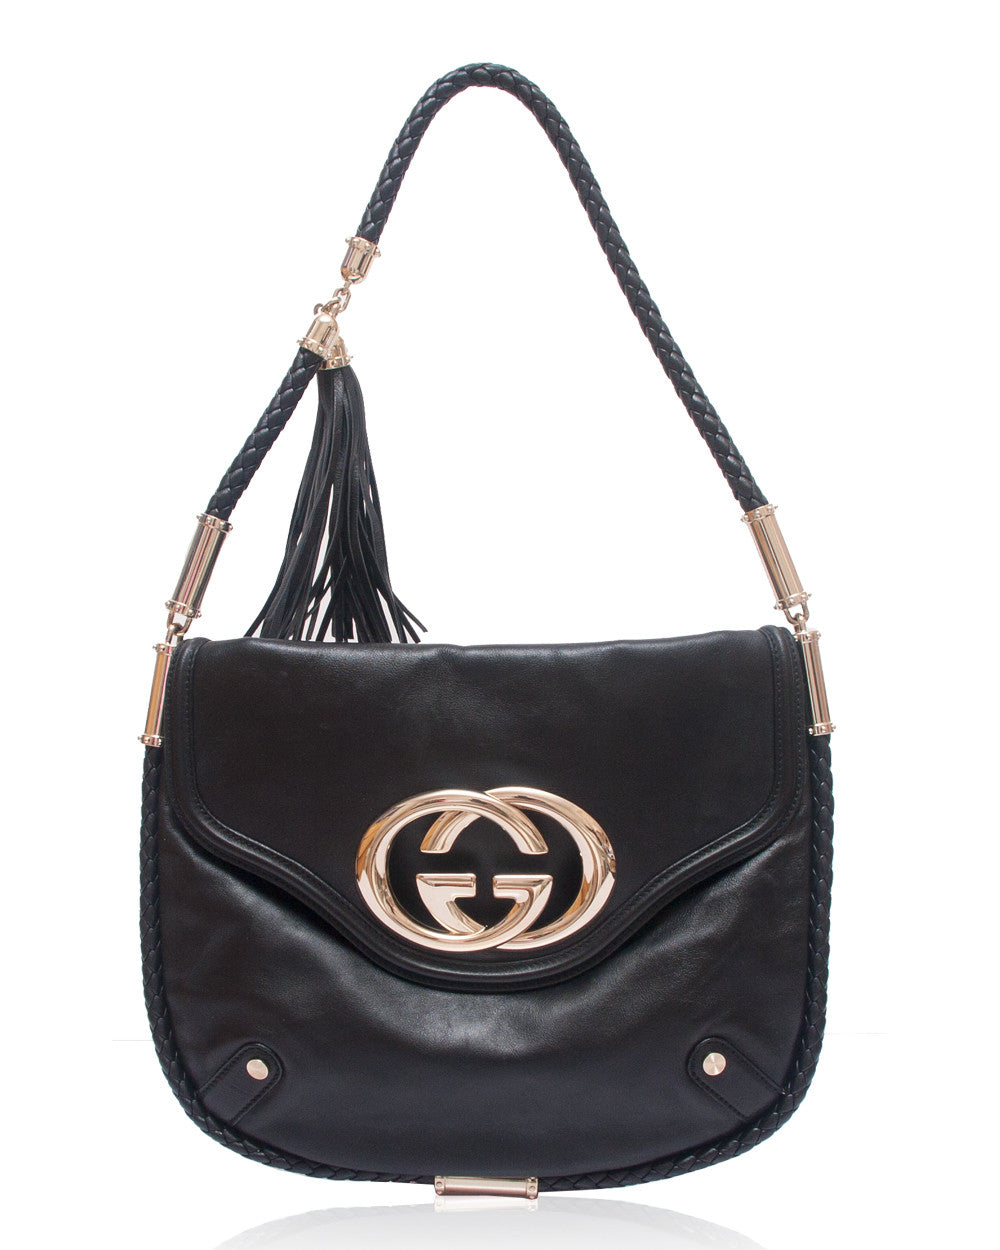 Gucci Britt Tassel Bag